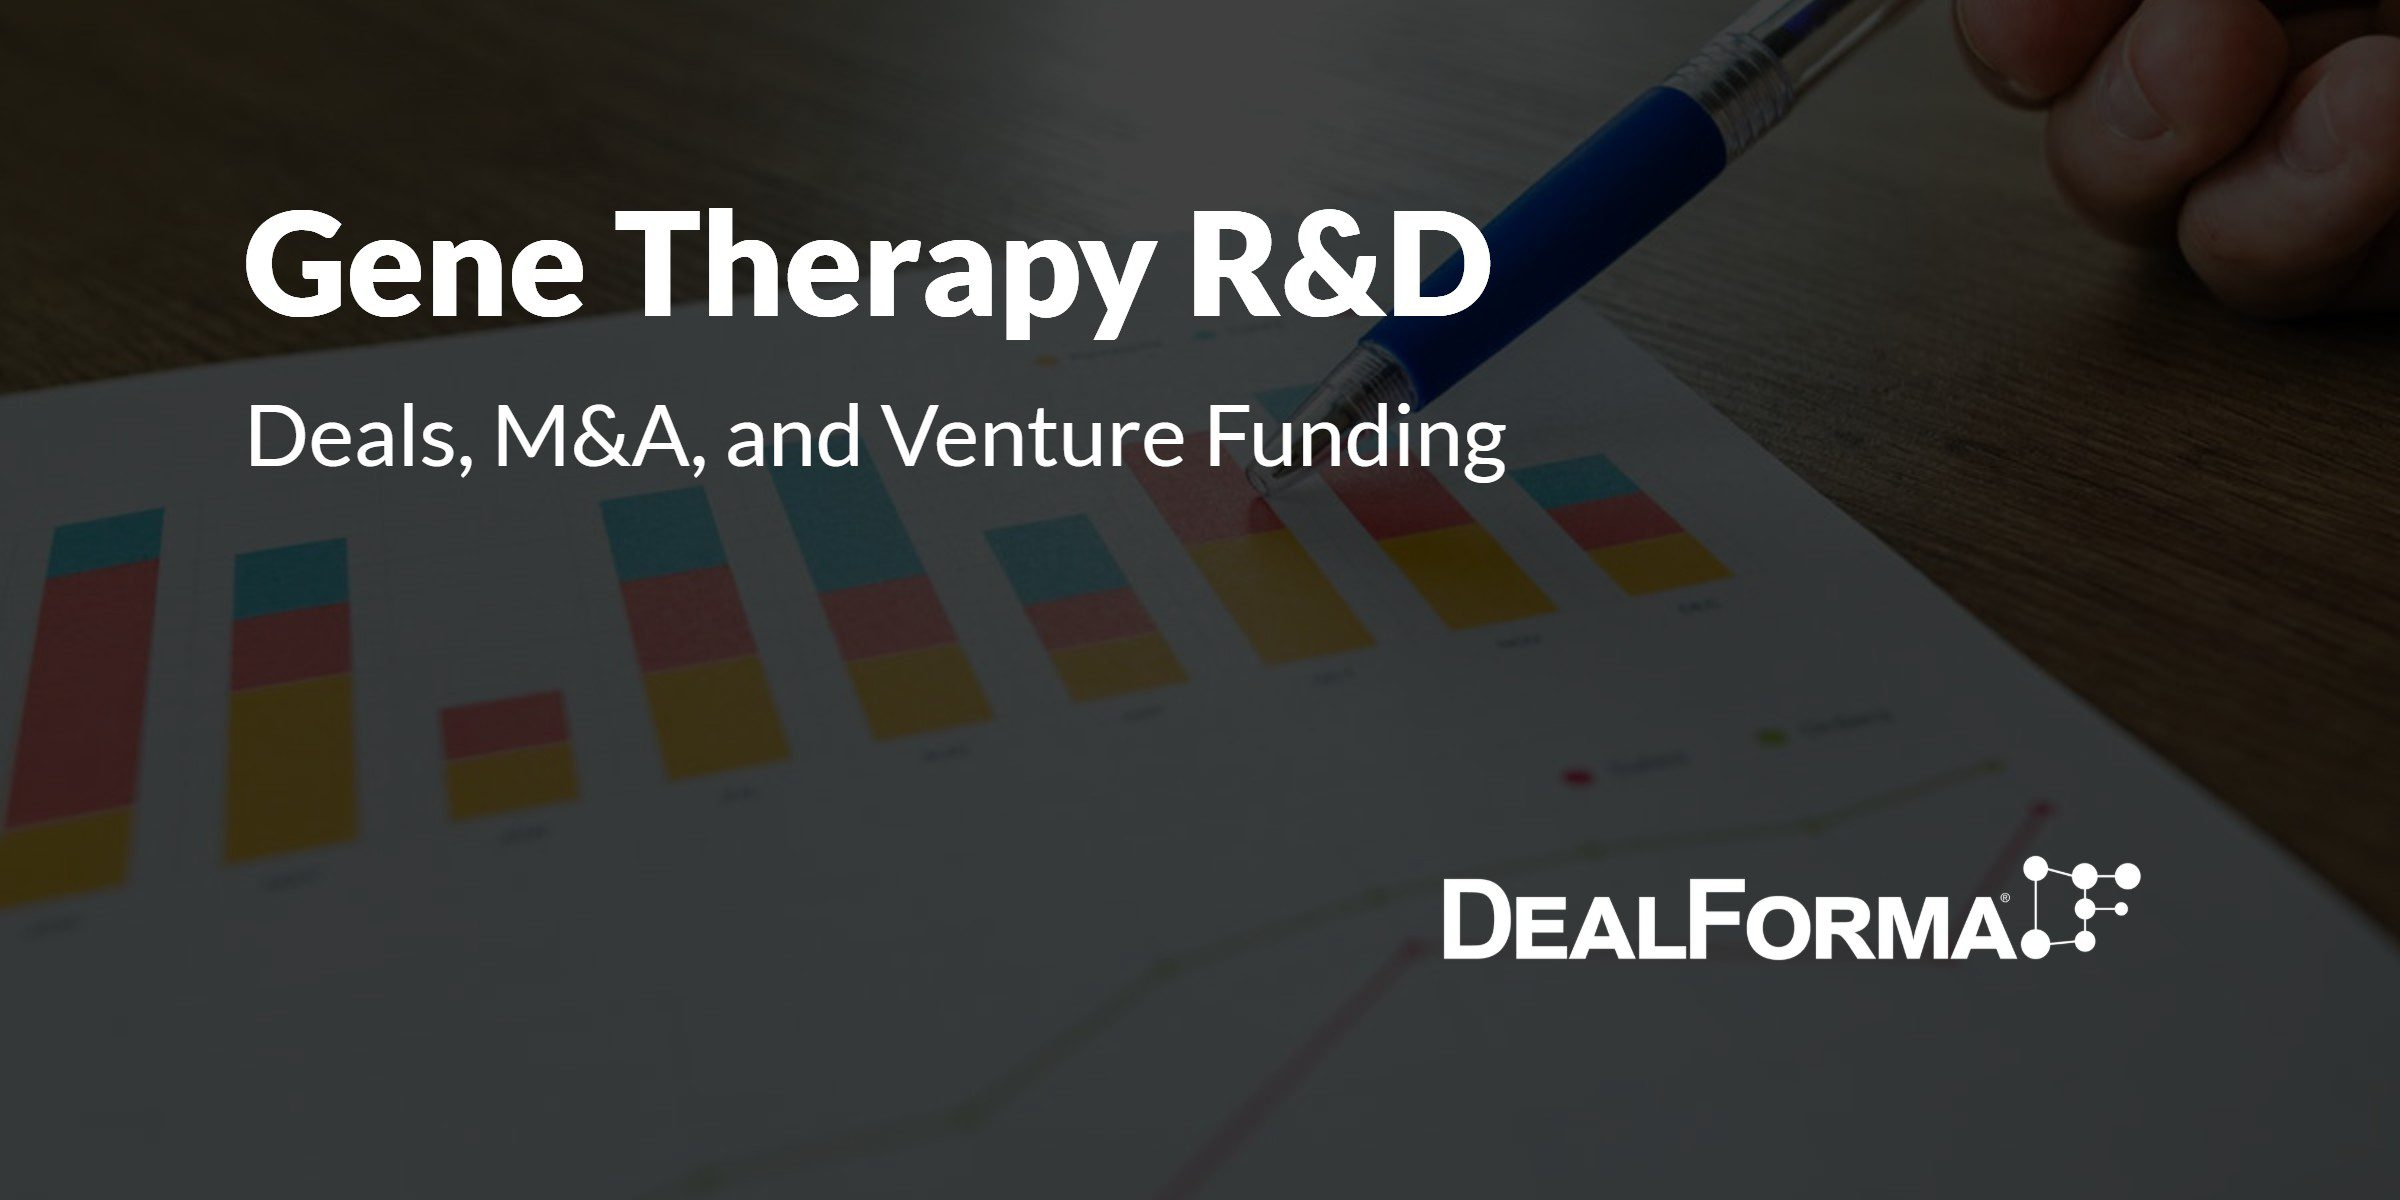 Gene Therapy Deals, M&A, Academic Partnerships, and Venture Funding